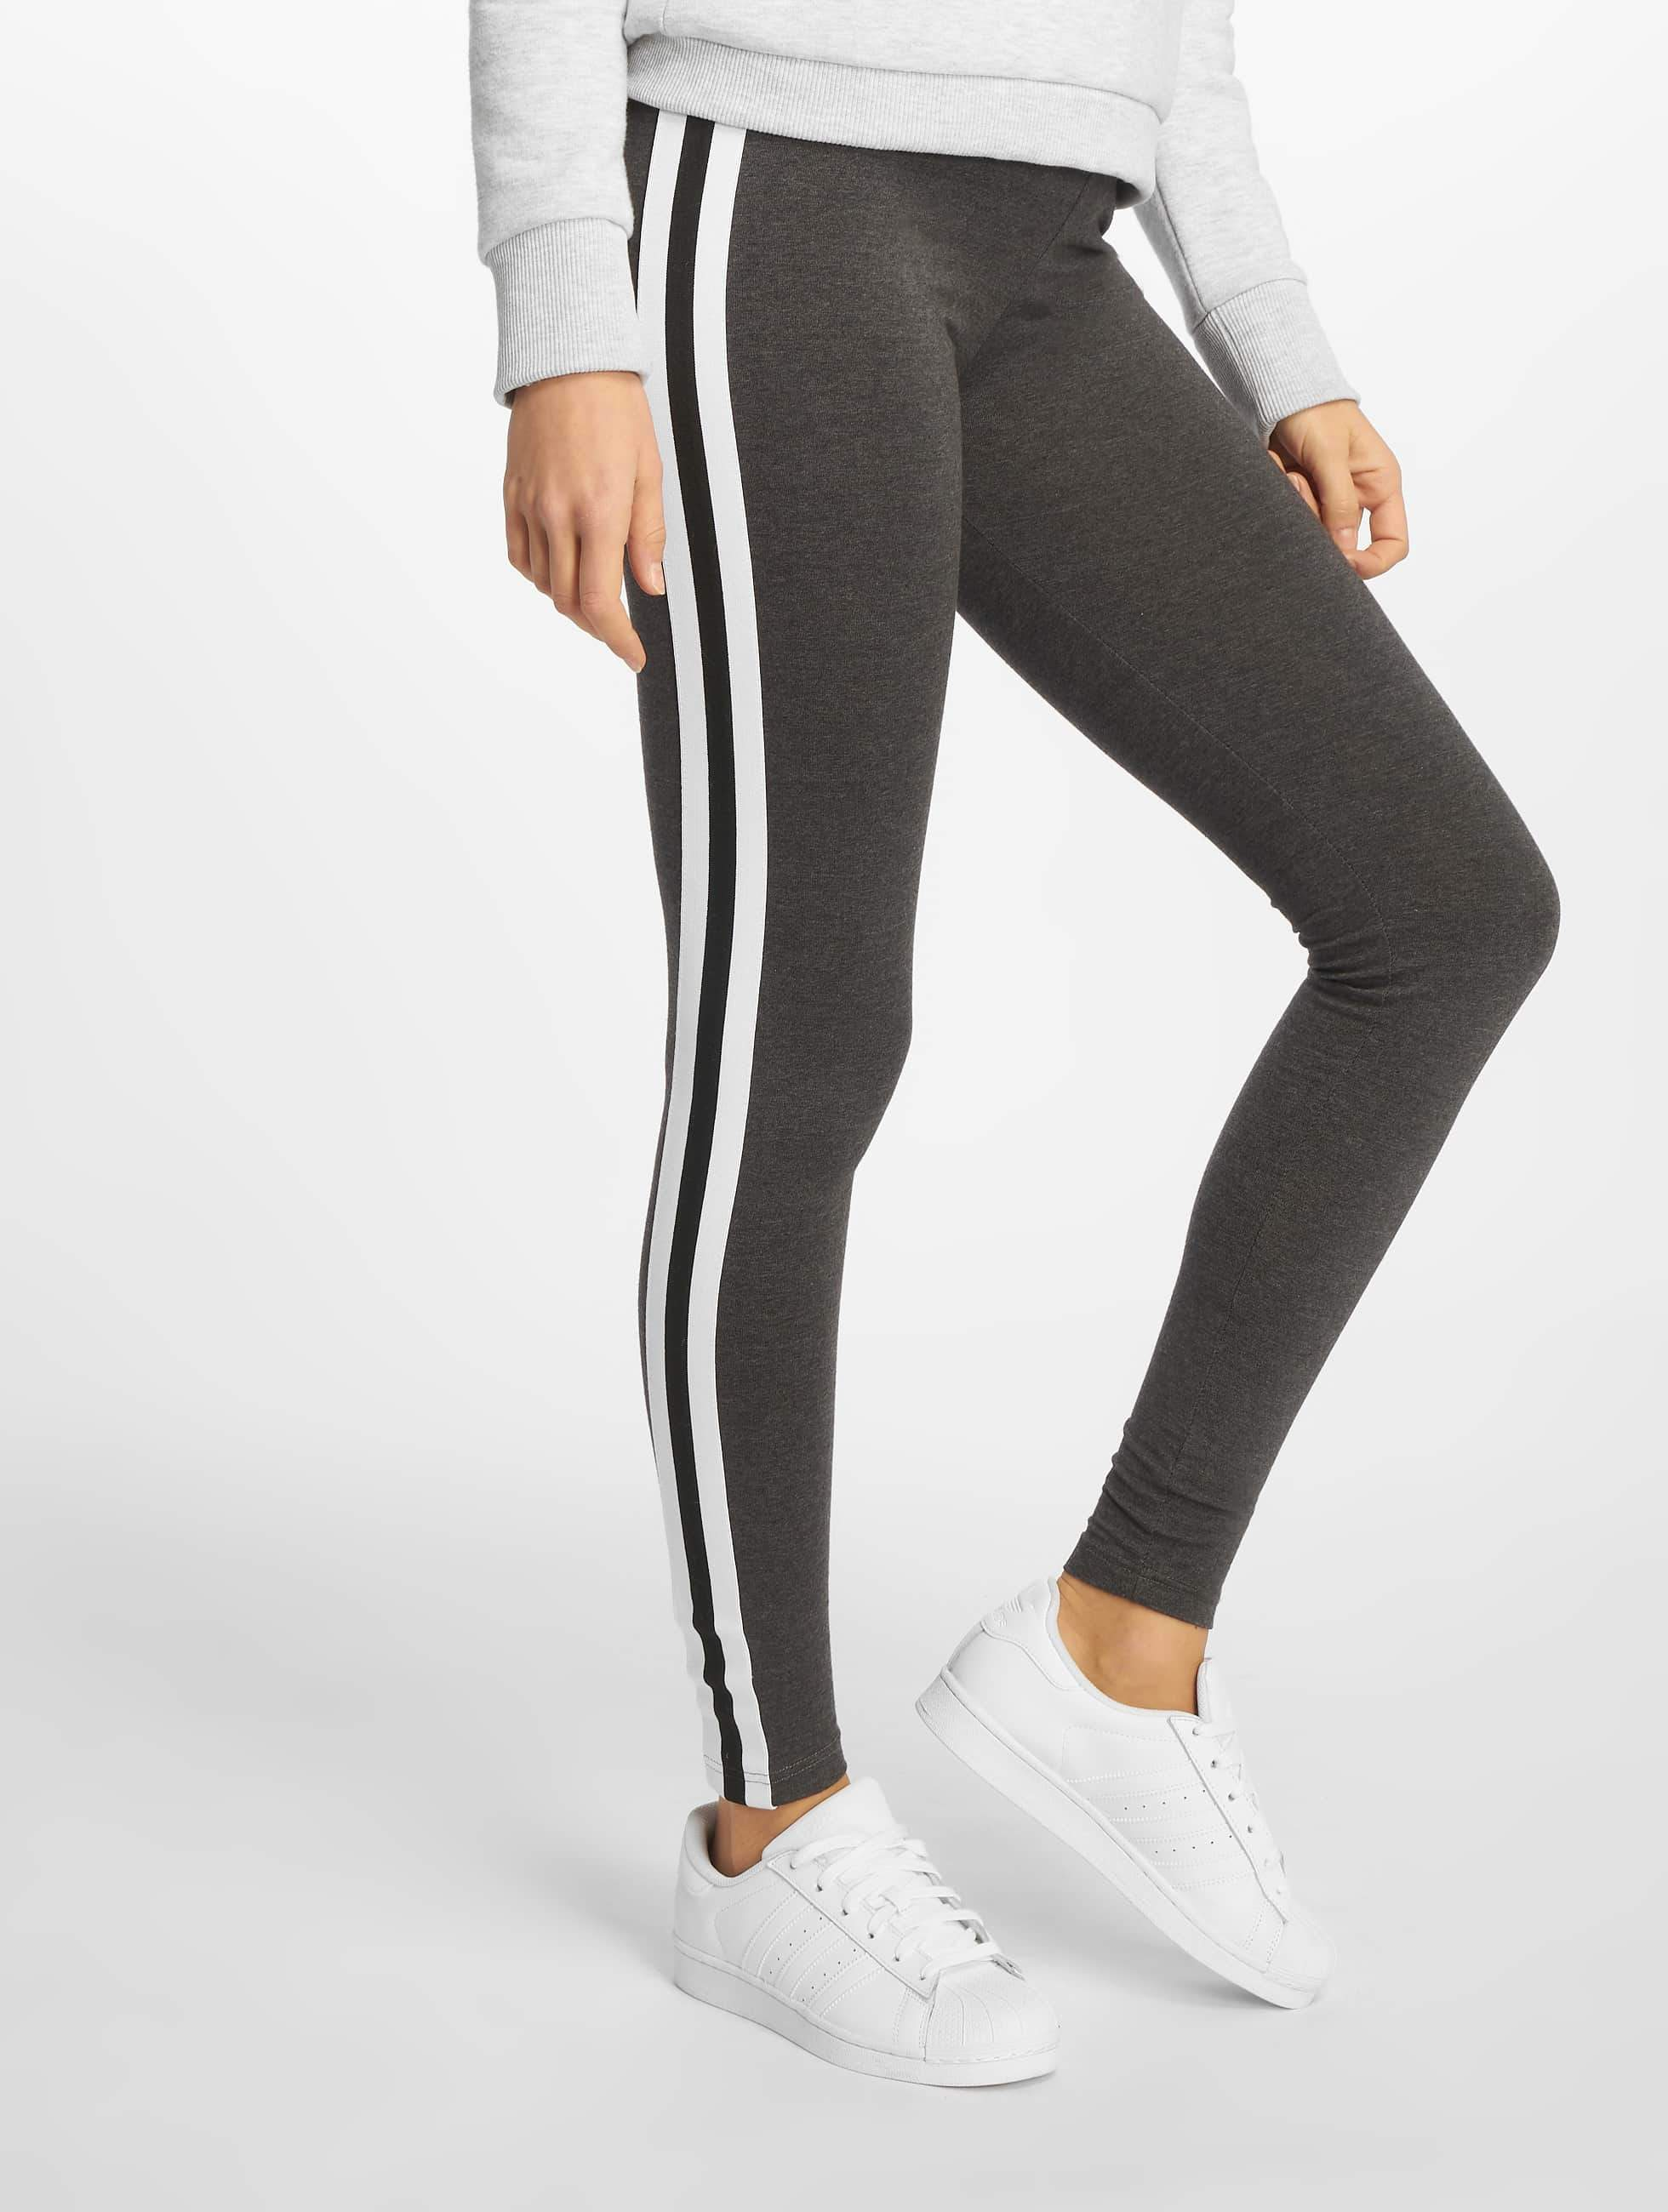 Just Rhyse / Legging/Tregging Villamontes in grey XS